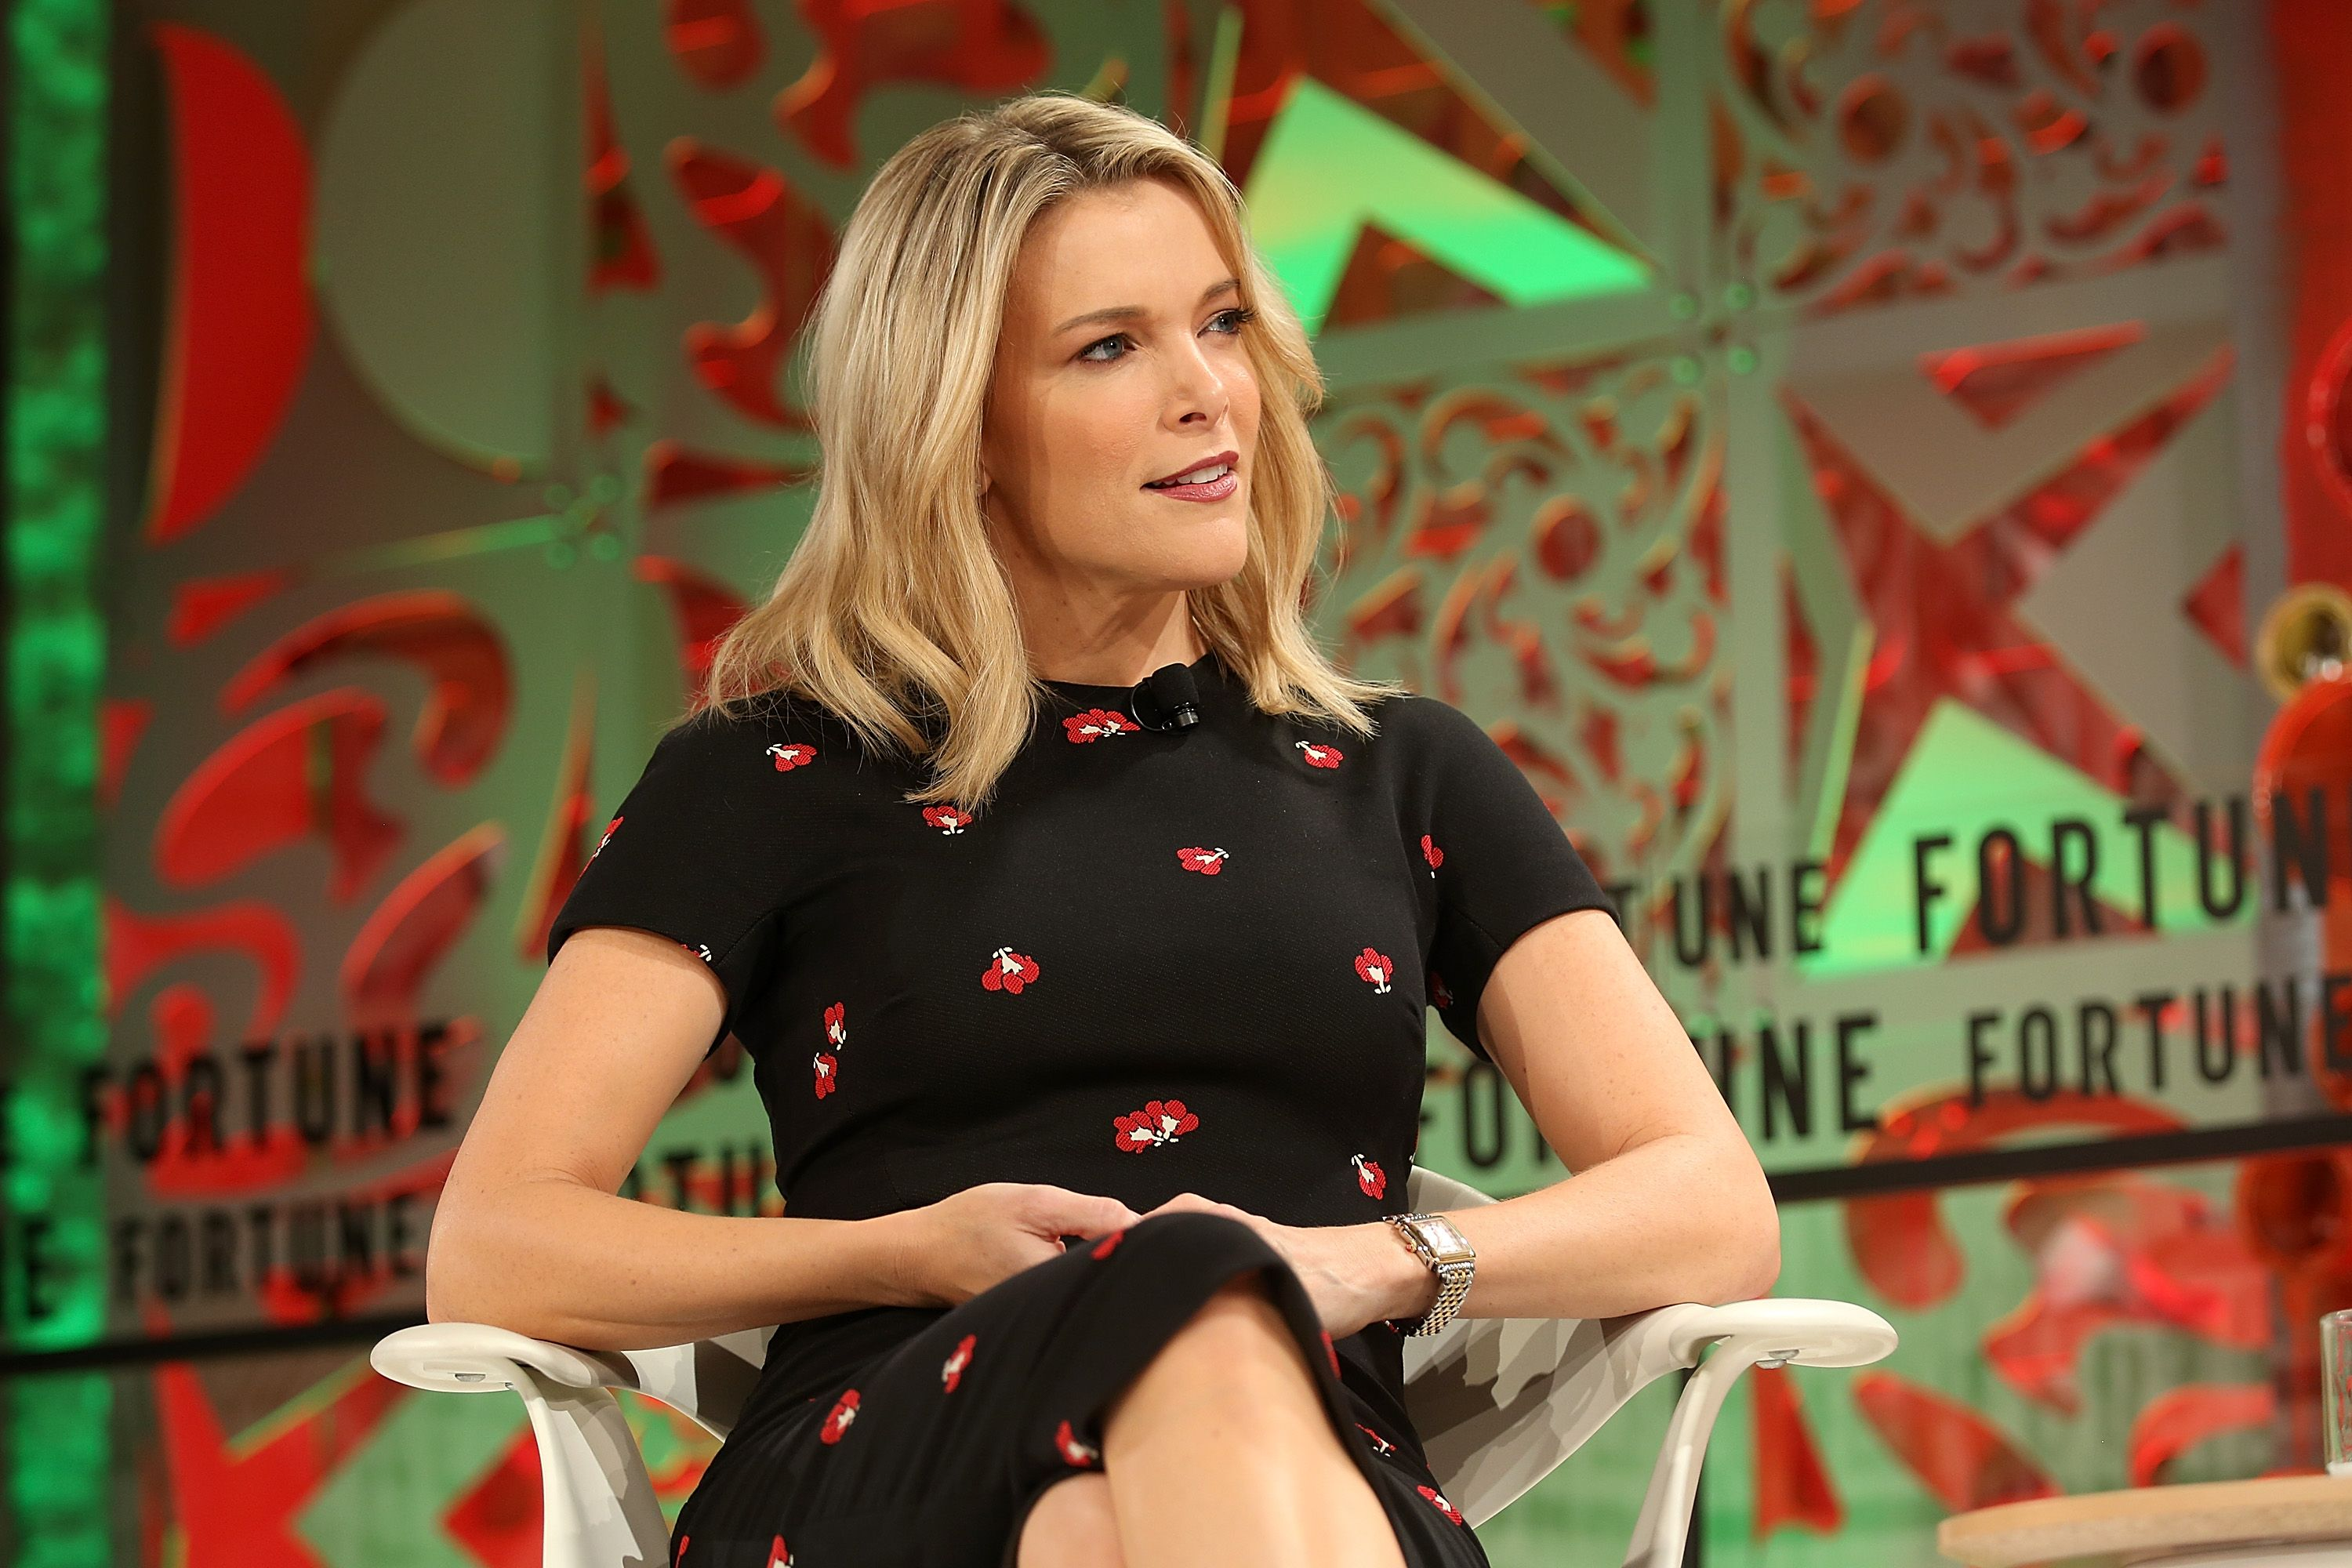 Megyn Kelly's Show Is Officially Canceled Three Days After She Defended Blackface